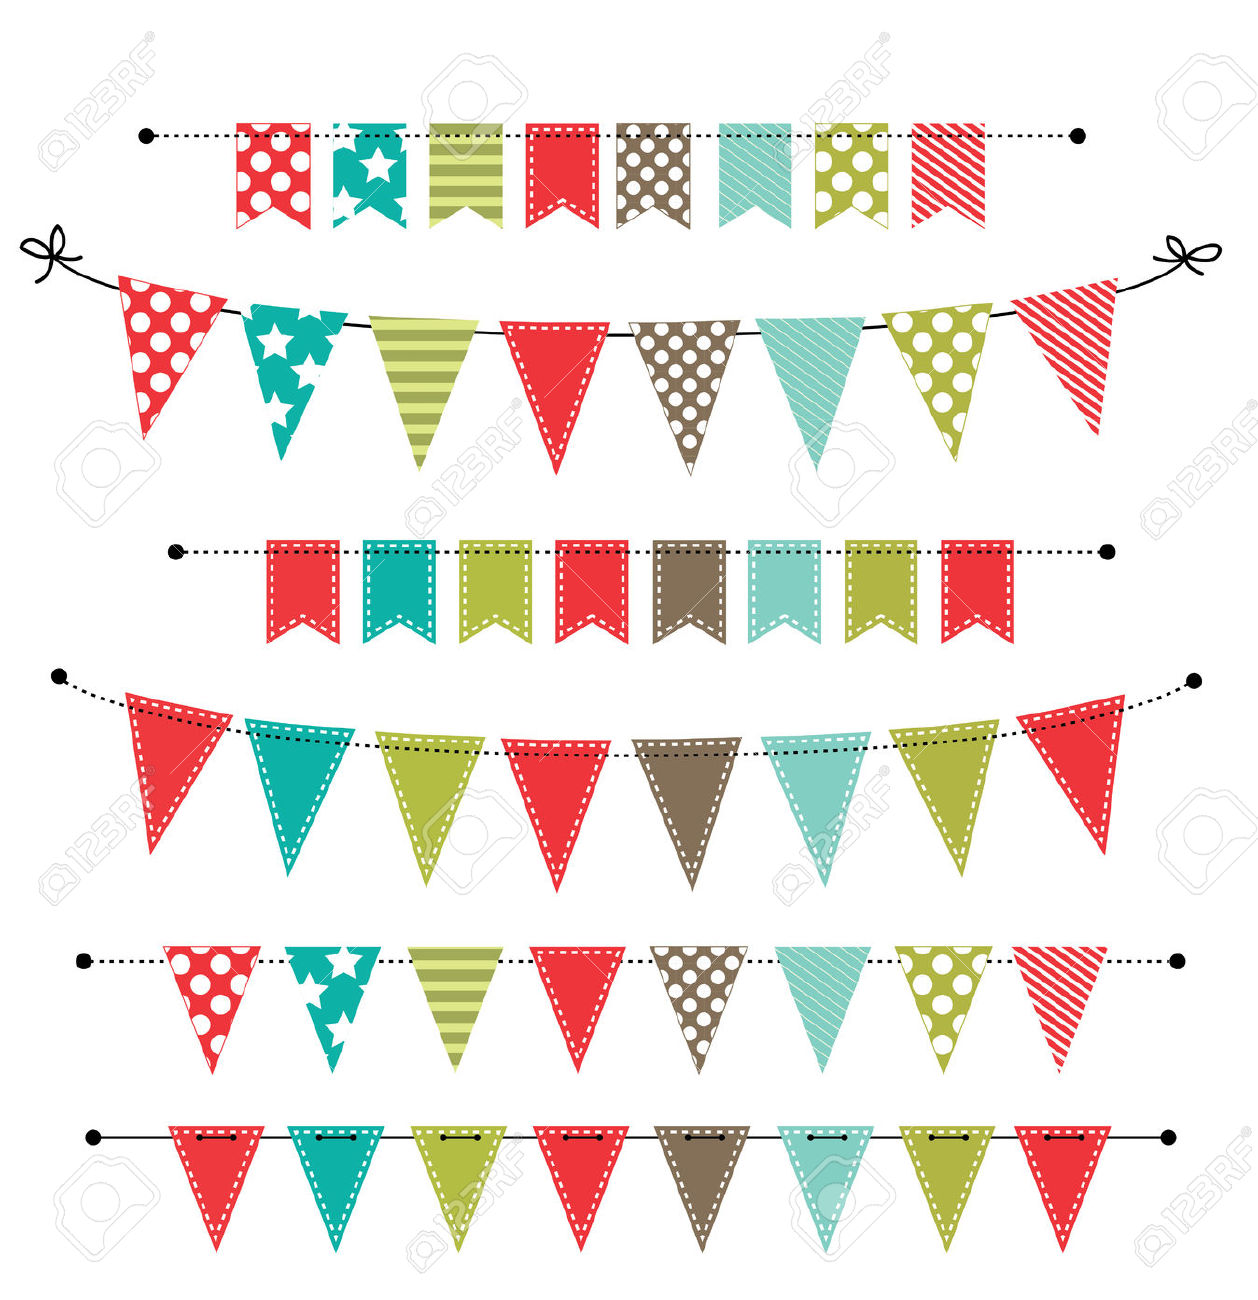 Christmas Banner, Bunting Or Flags On Transparent Background.